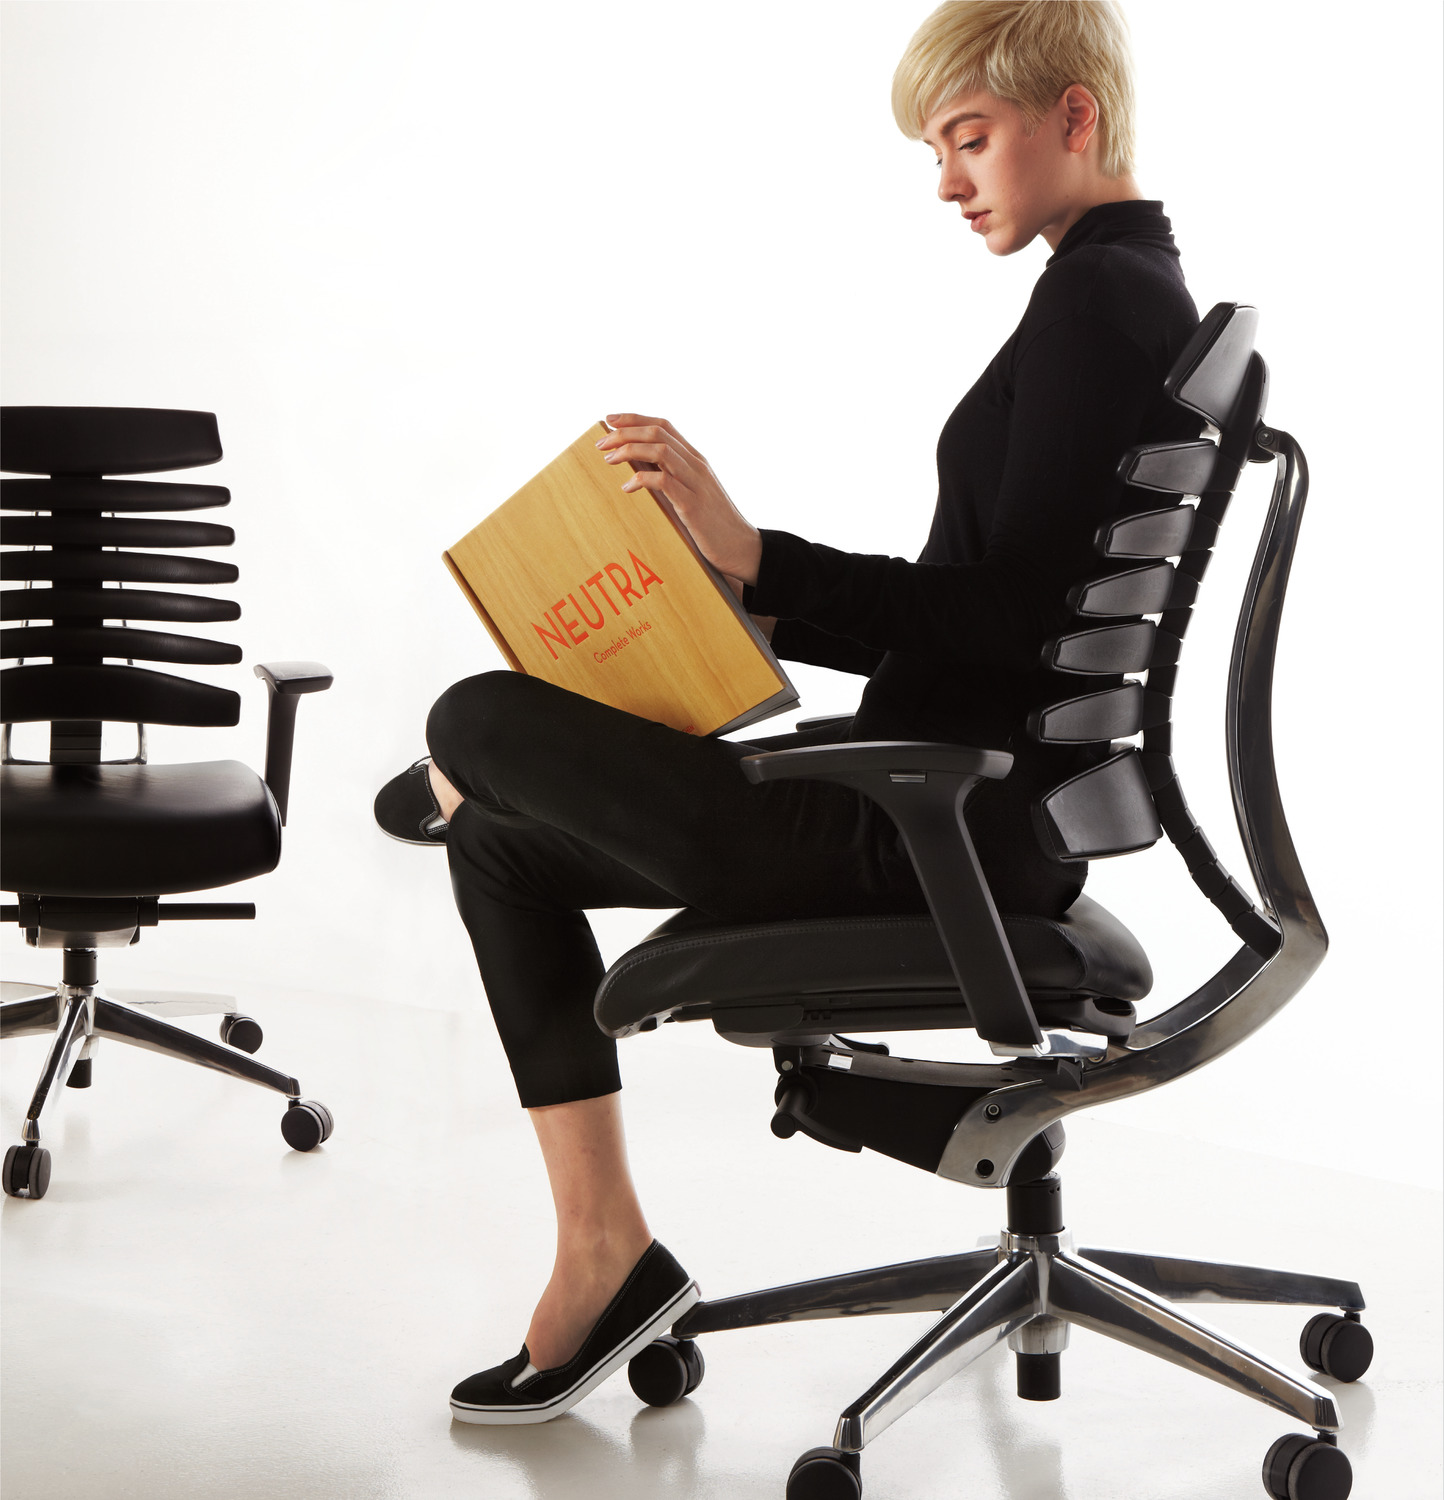 RBT Task Chair - Side View - Brochure - Polished Aluminum Base